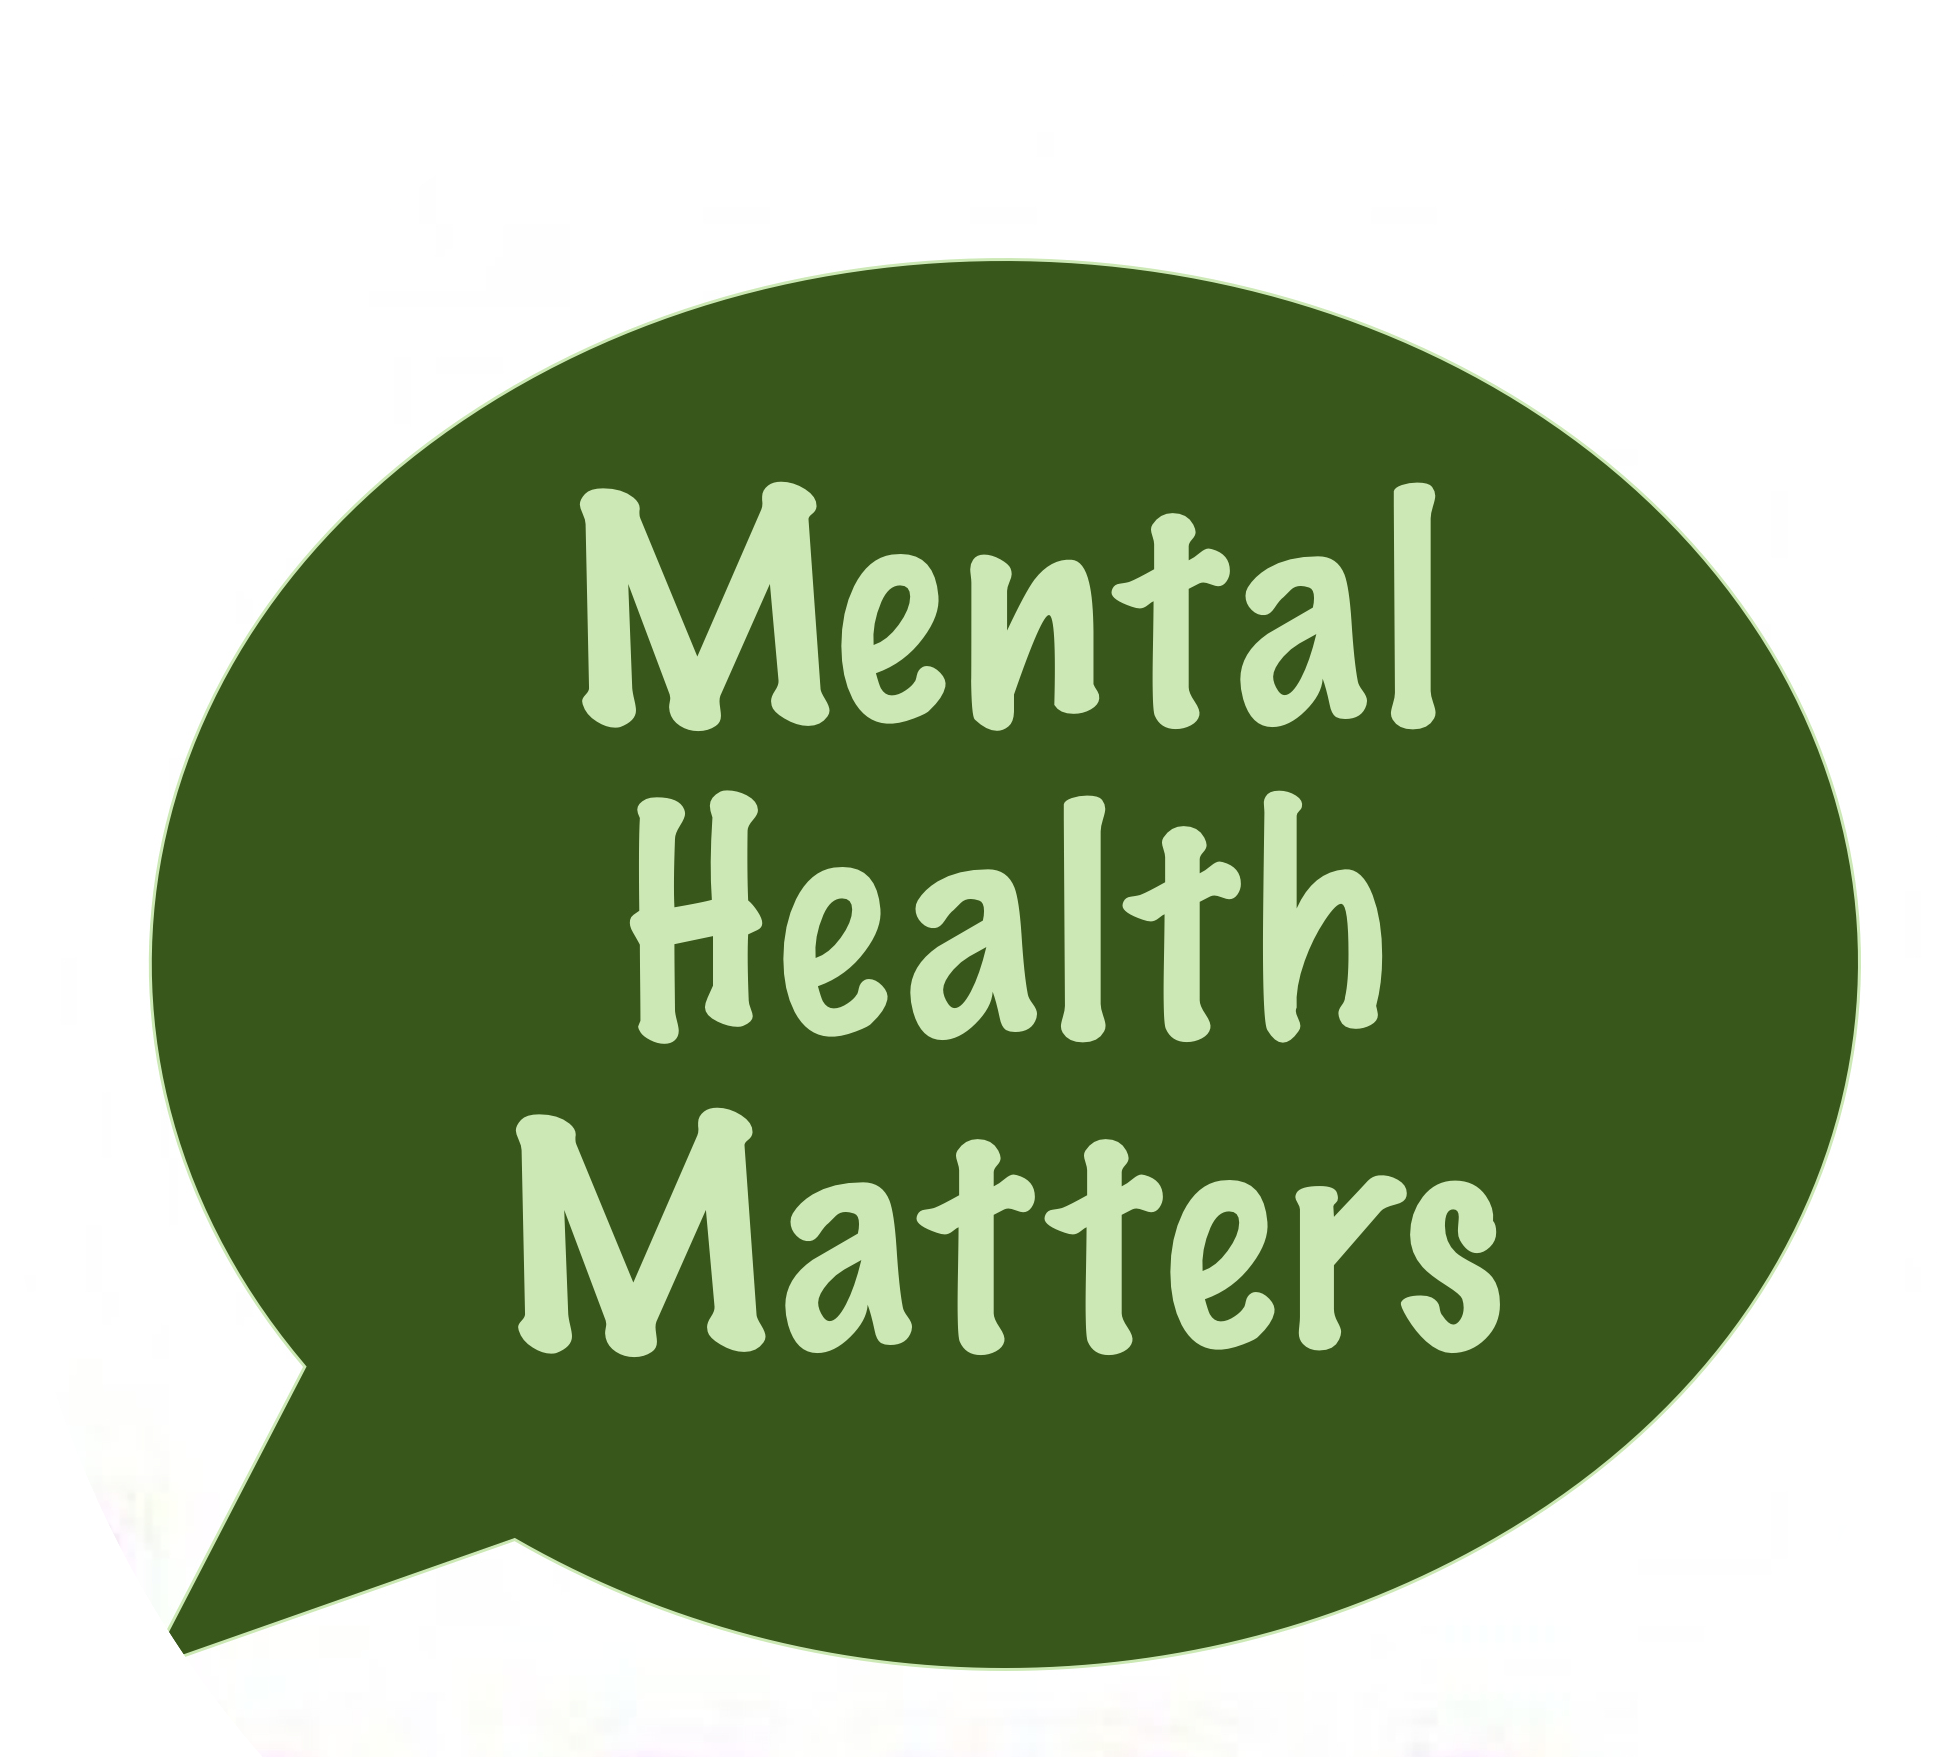 mental health Mental health is an important part of overall health and well-being mental health includes our emotional, psychological, and social well-being.